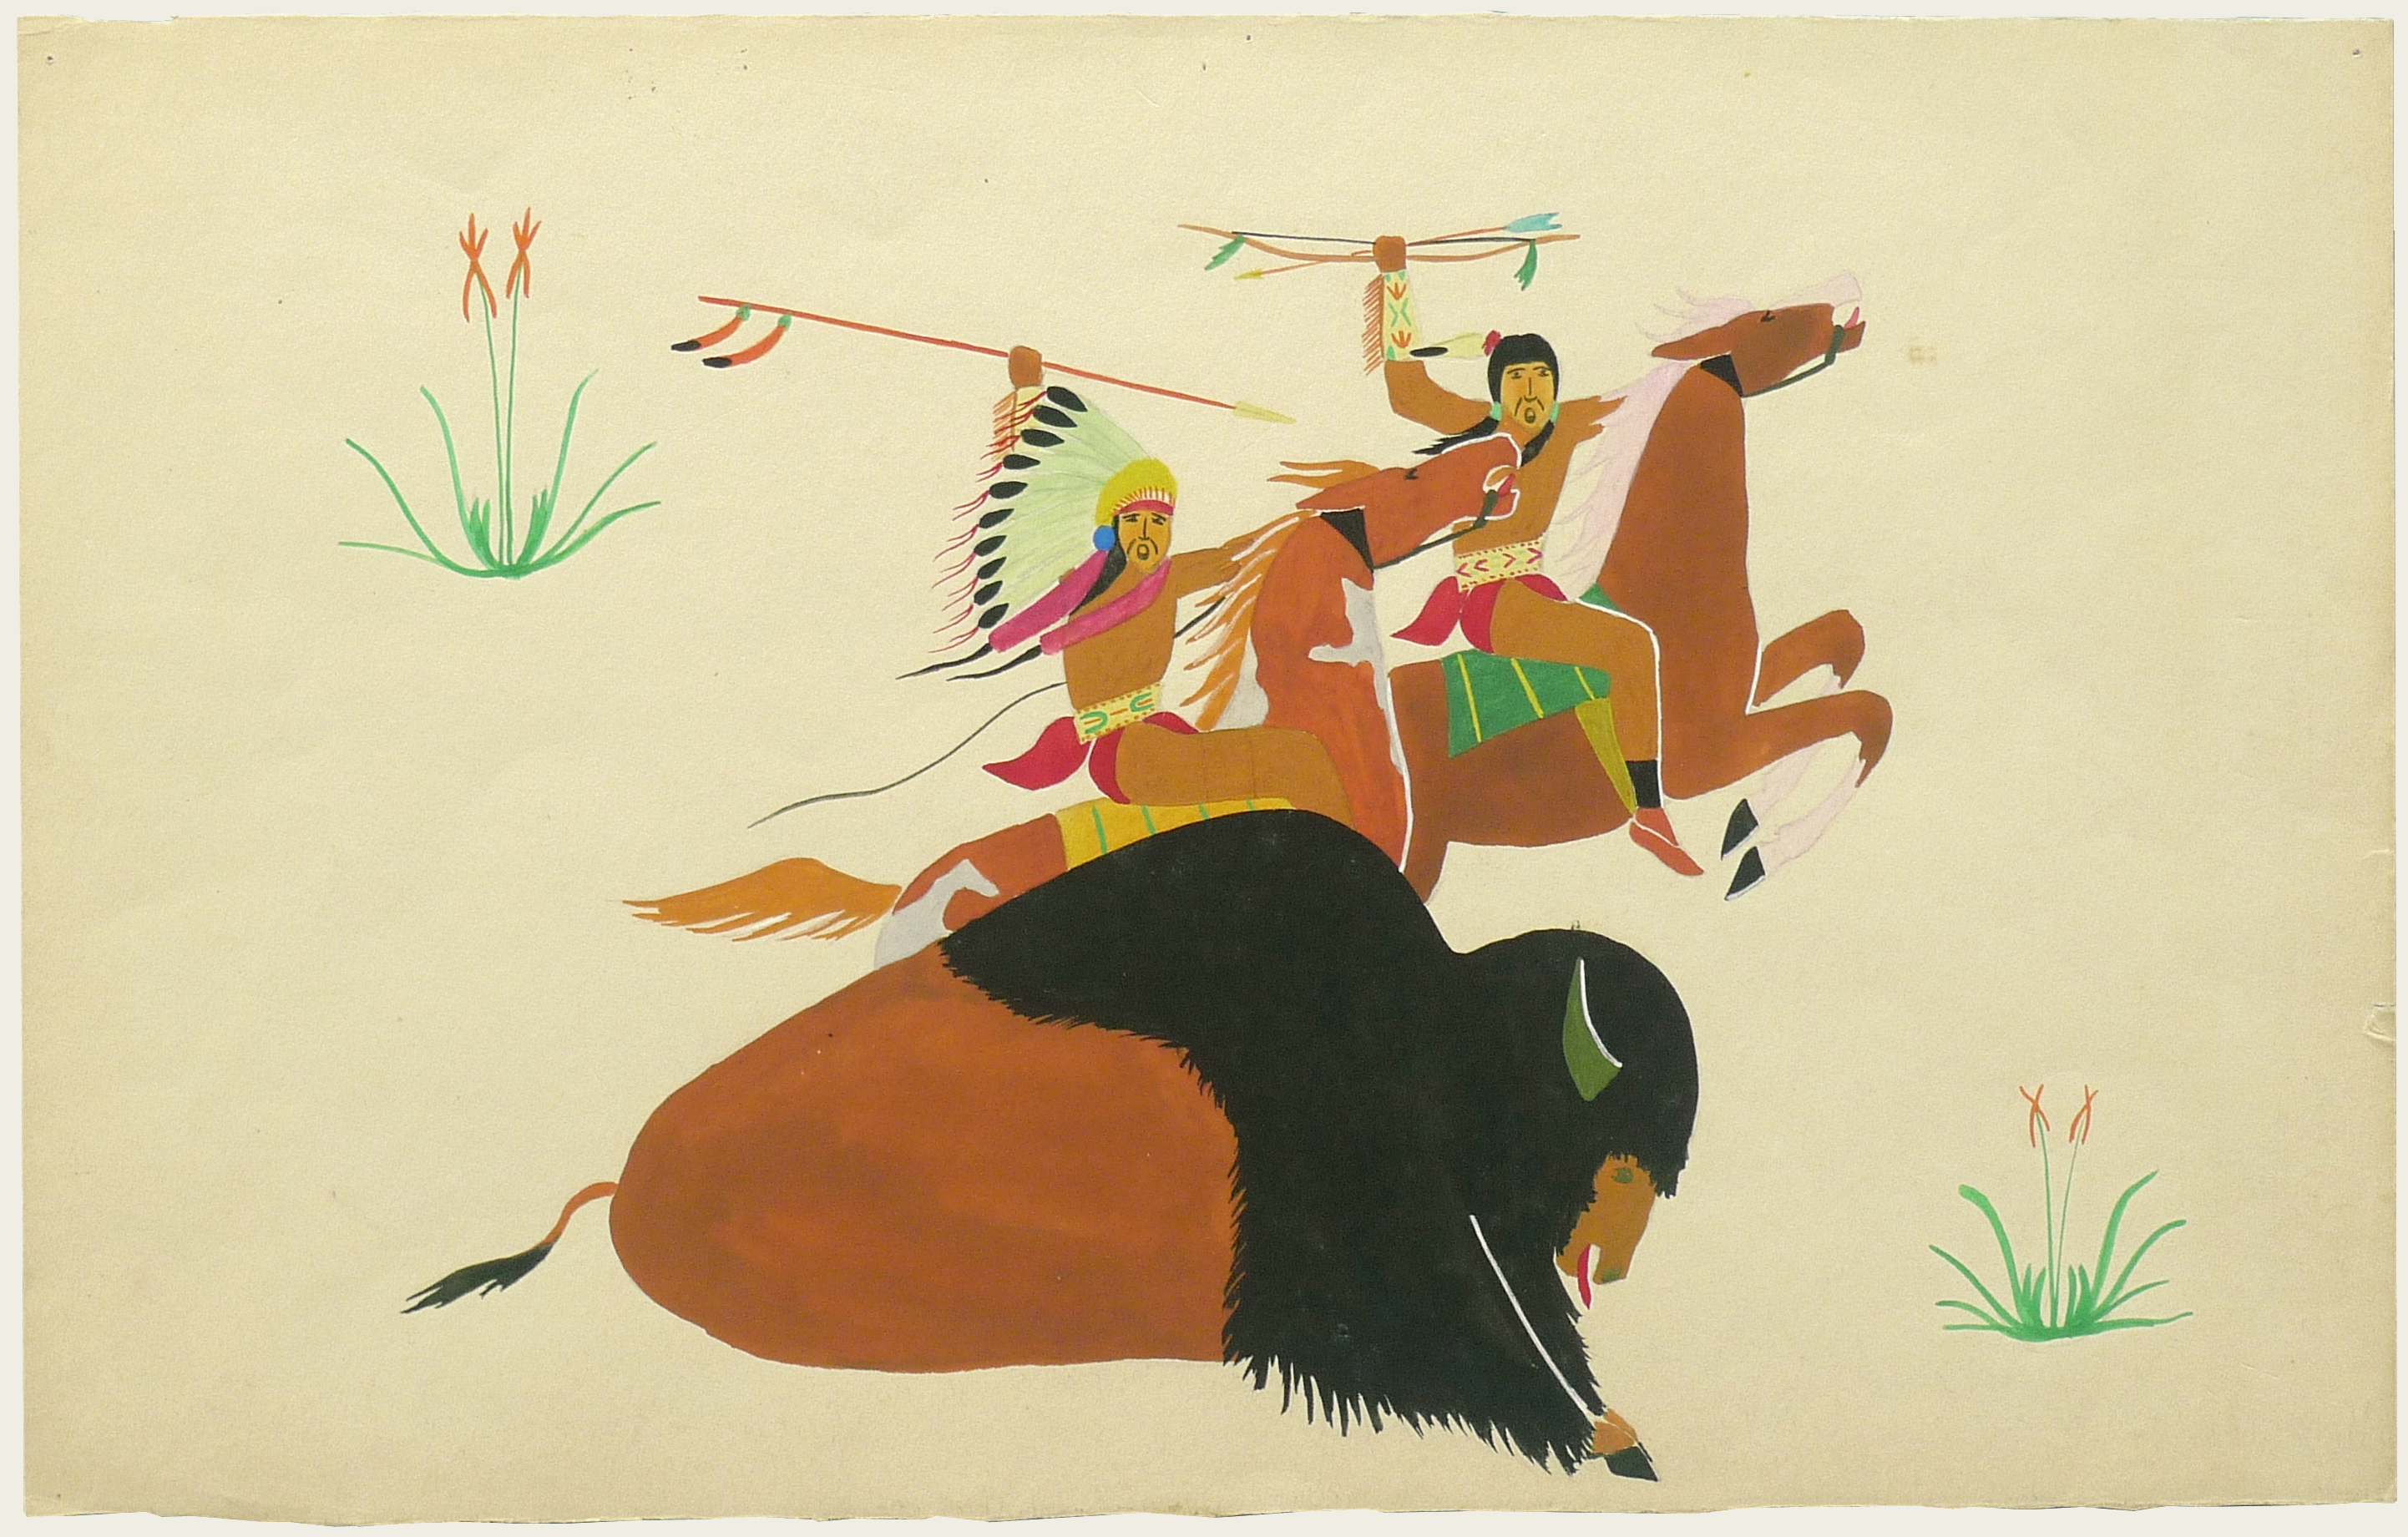 Art Exhibition Poster fragment with painting of two figures riding brown horses that run toward the right. The rider at left raises a spear and the rider at right waves a bow and arrow. A large buffalo lies in the foreground facing right.